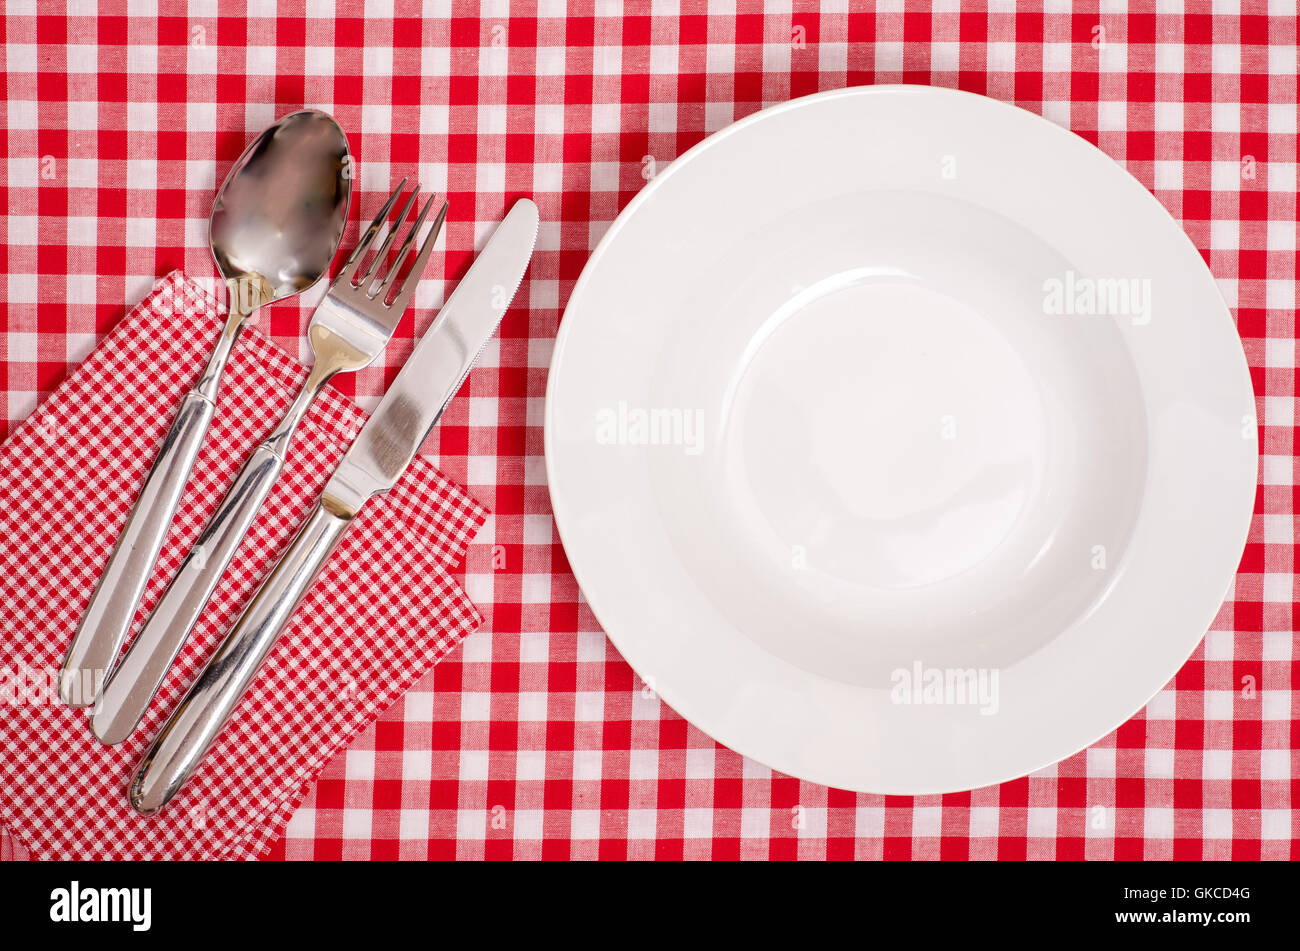 white plates and cutlery - Stock Image